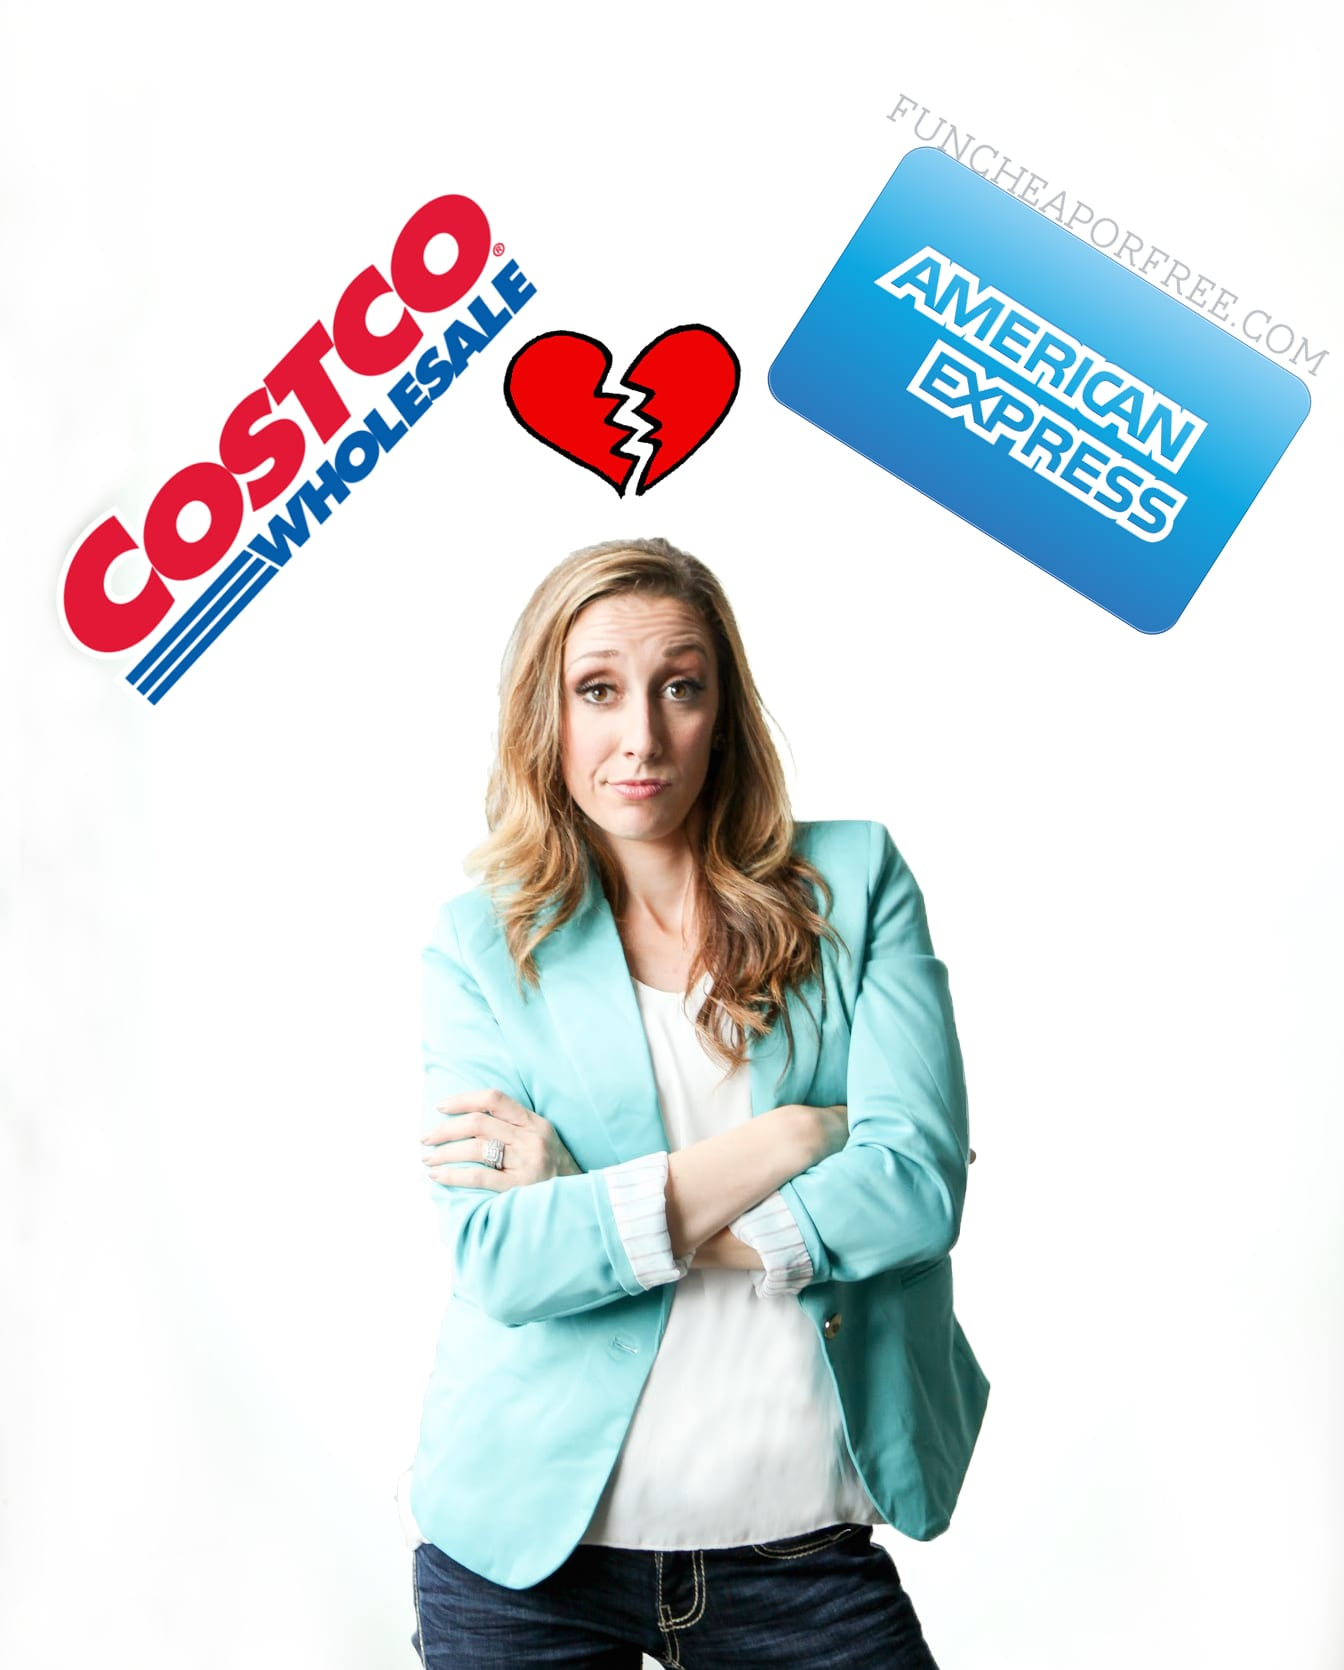 WHY Costco and American Express are breaking up, and WHAT to do about it! From FunCheapOrFree.com